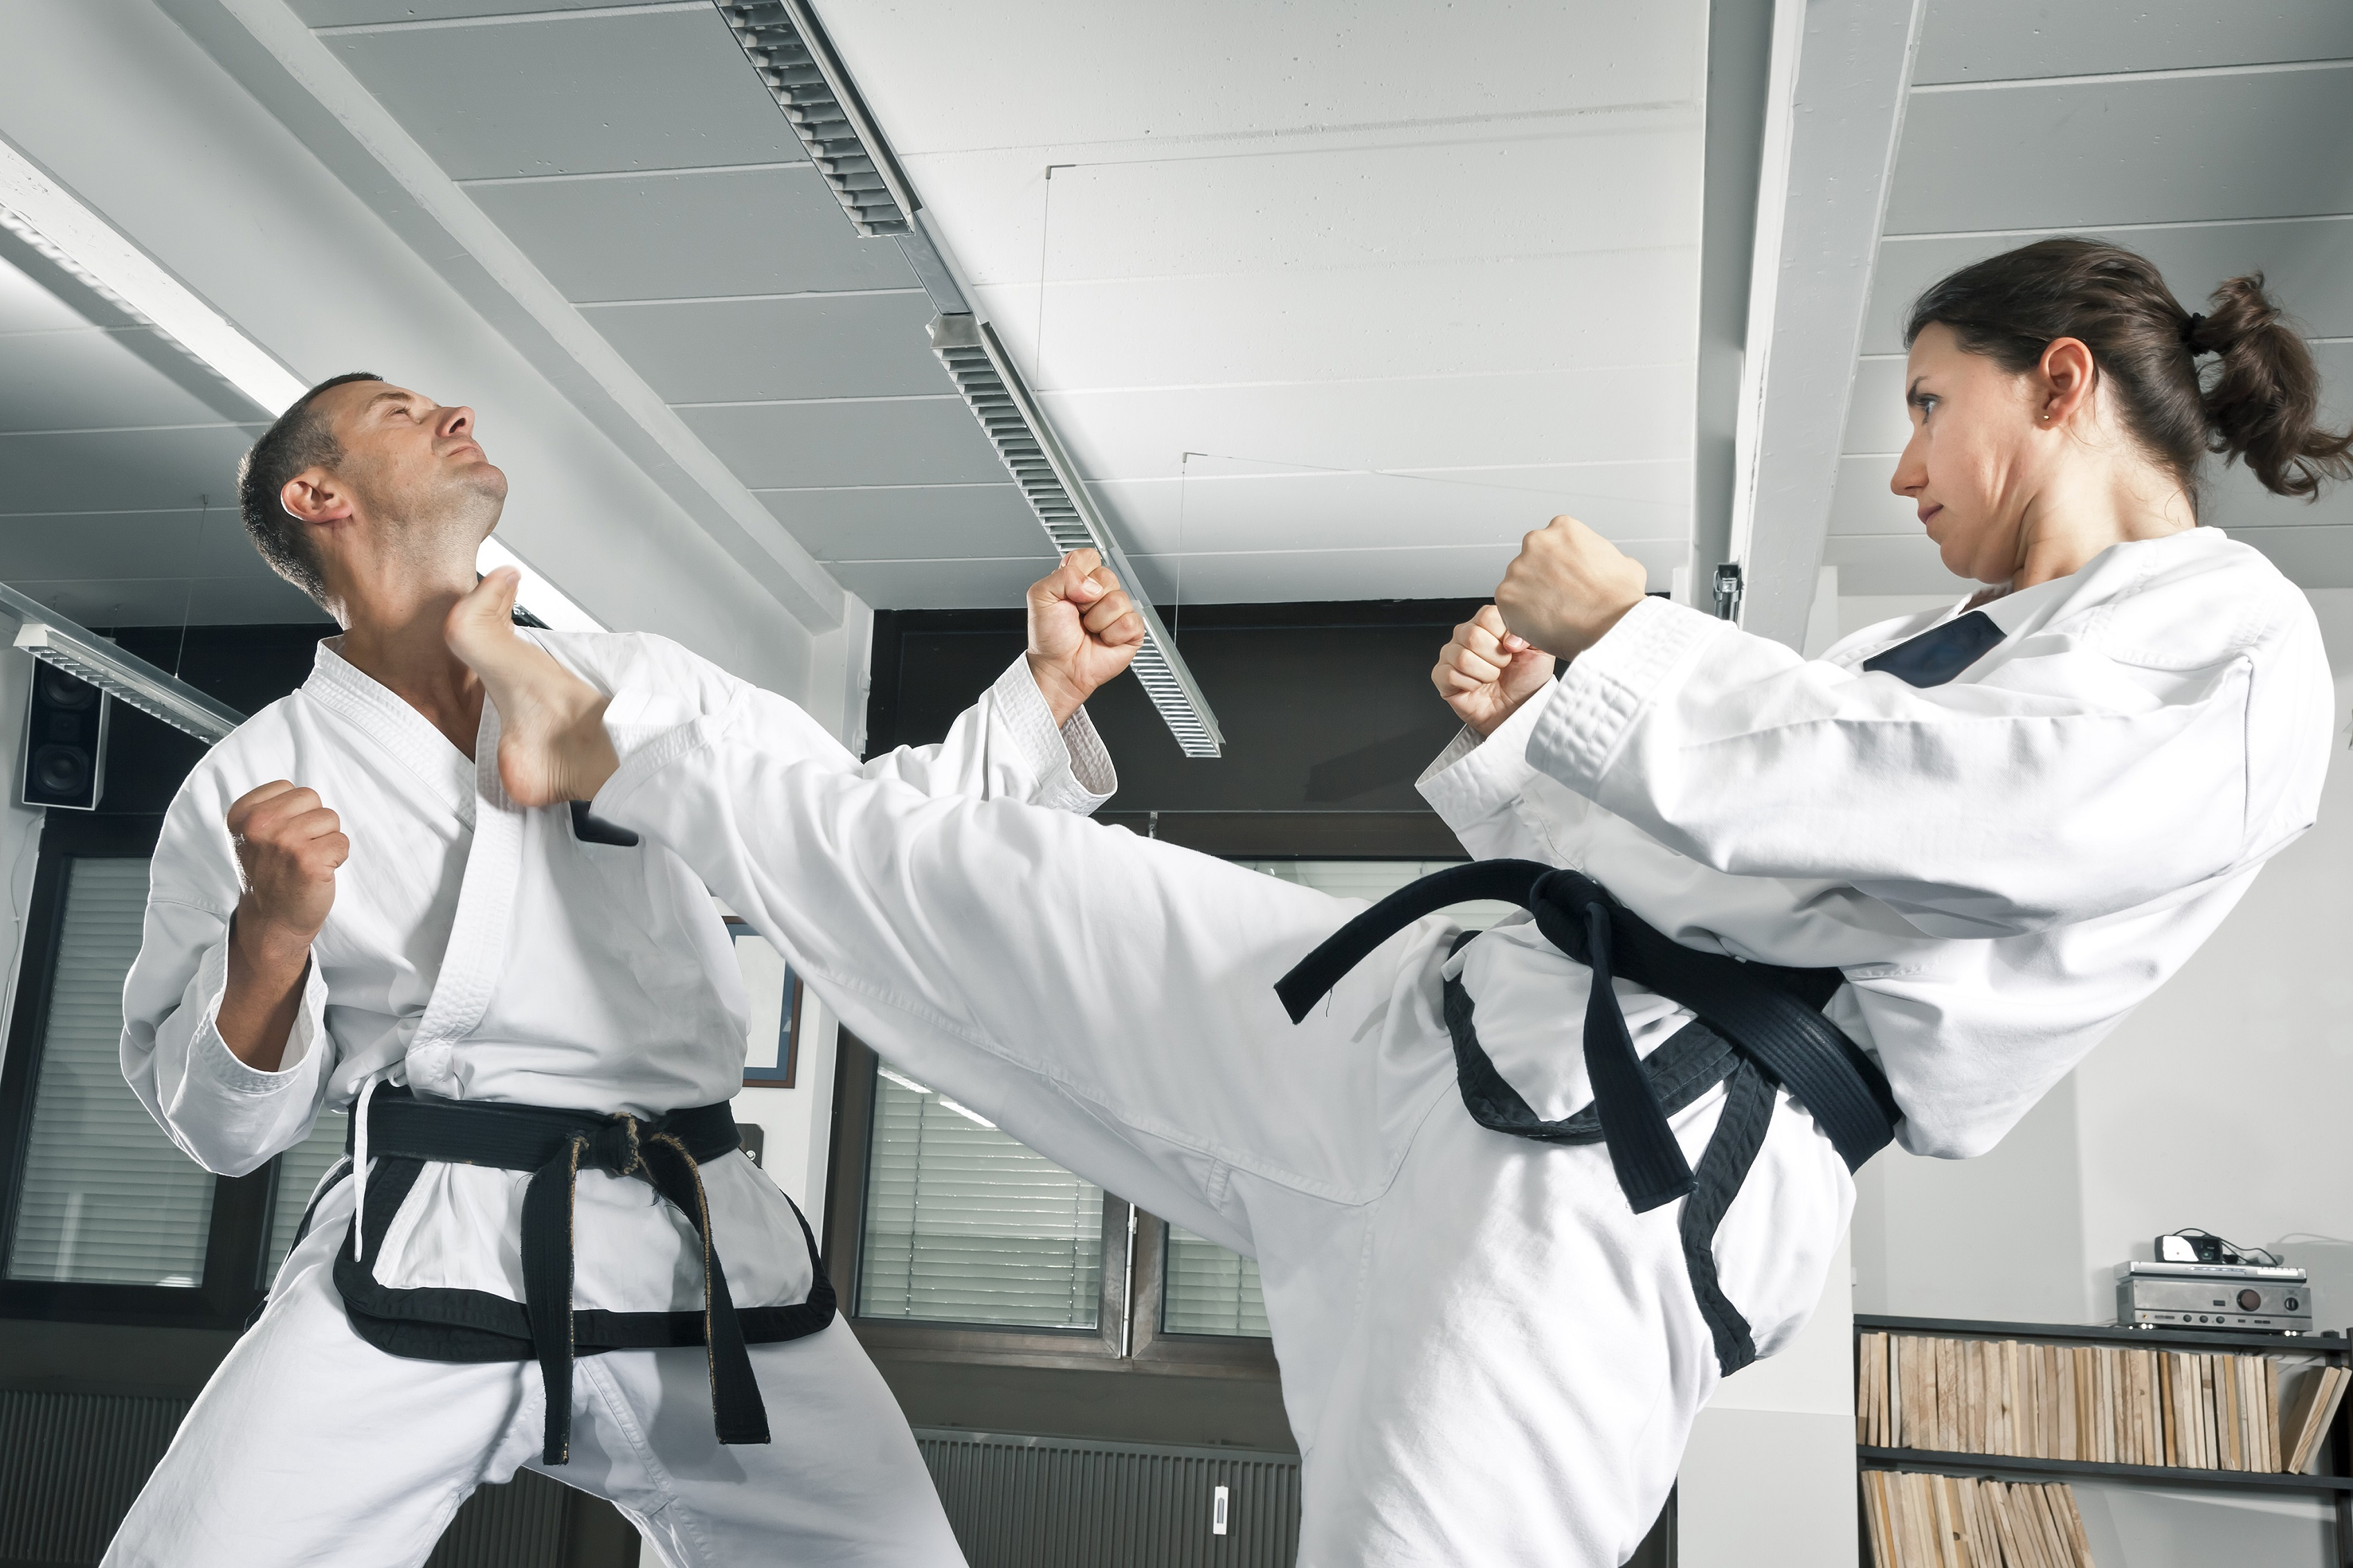 Martial arts are great for fitness and self-defense!